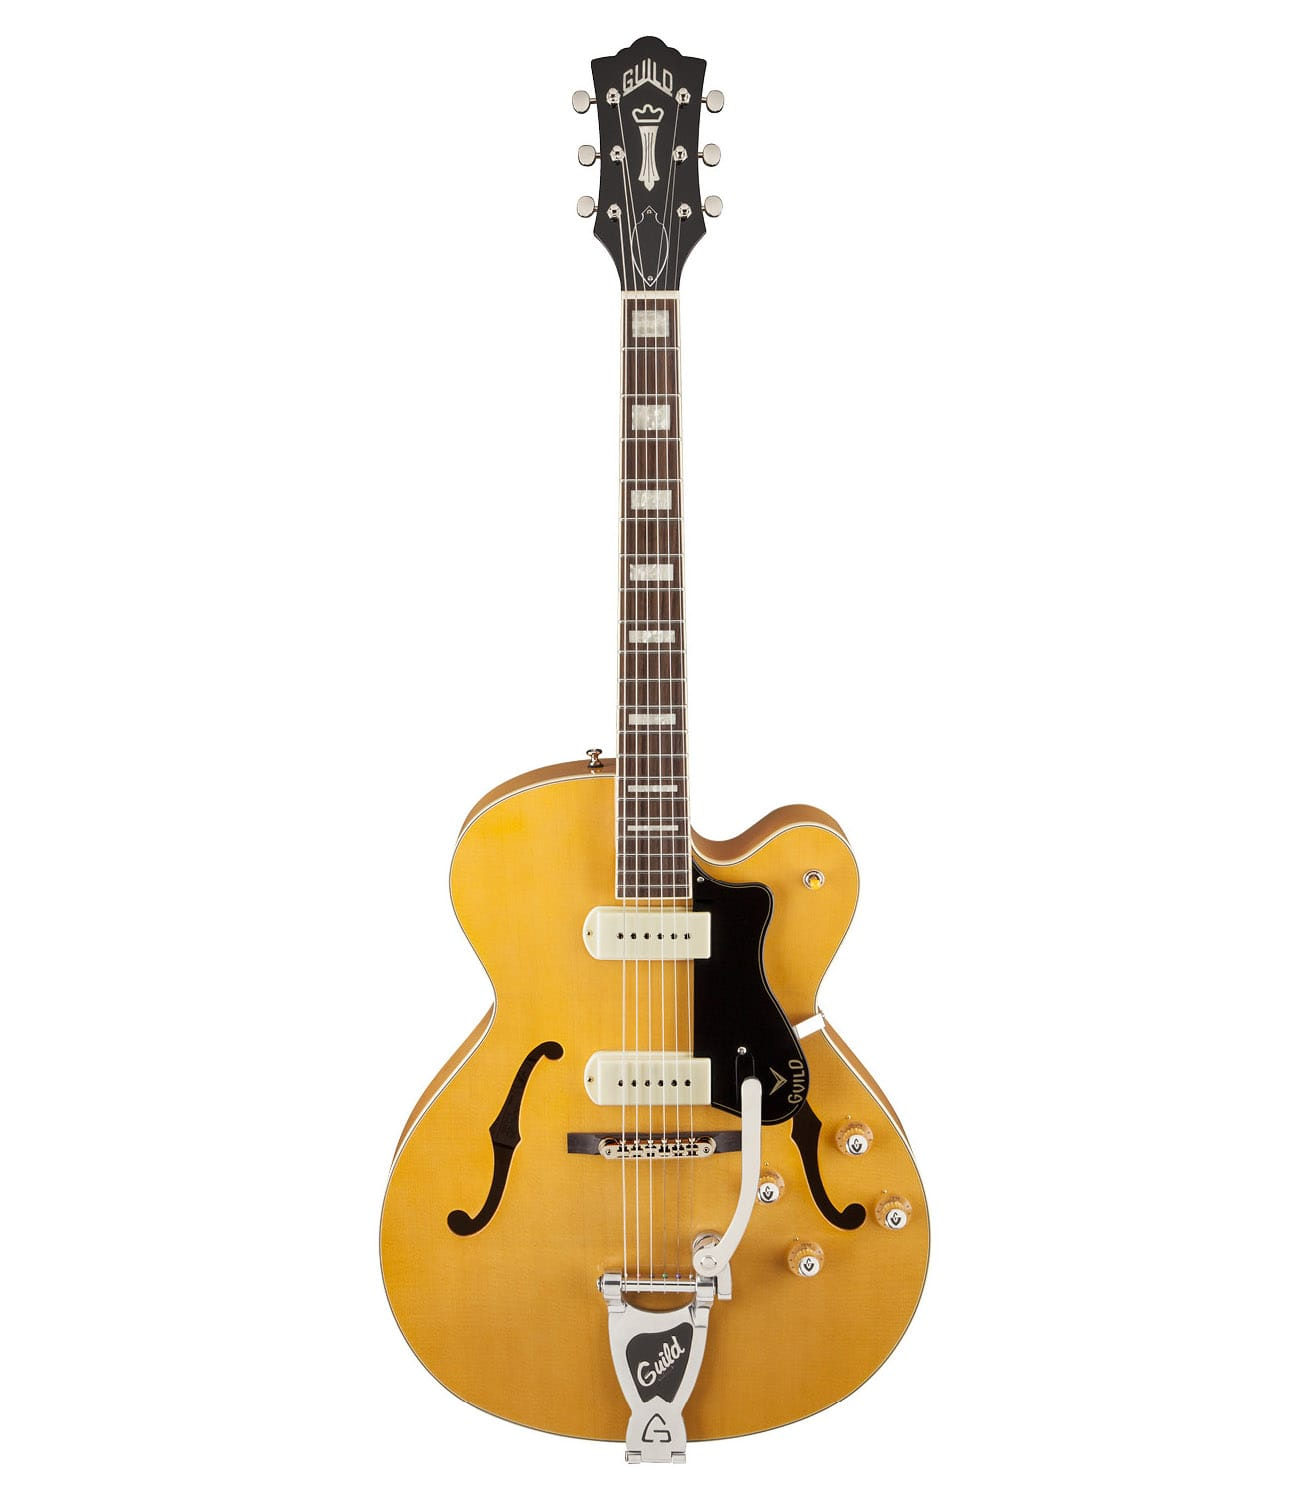 Guild - X 175B Manhattan Hollow Body Blonde Finish - Melody House Musical Instruments